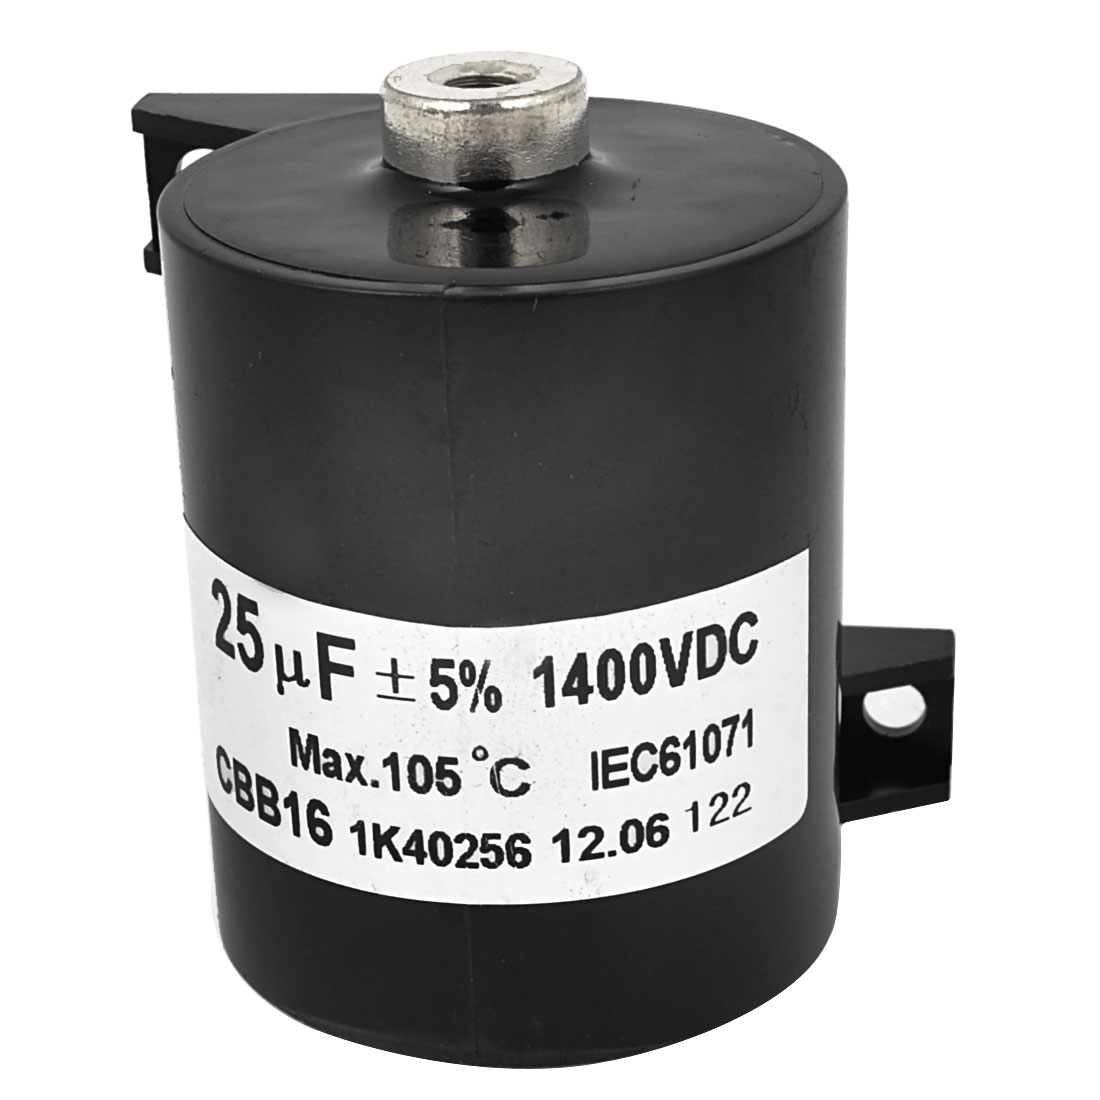 CBB16 DC 1400V 25uF 5% Plastic Housing Cylinder Capacitor Black for Electric Welder